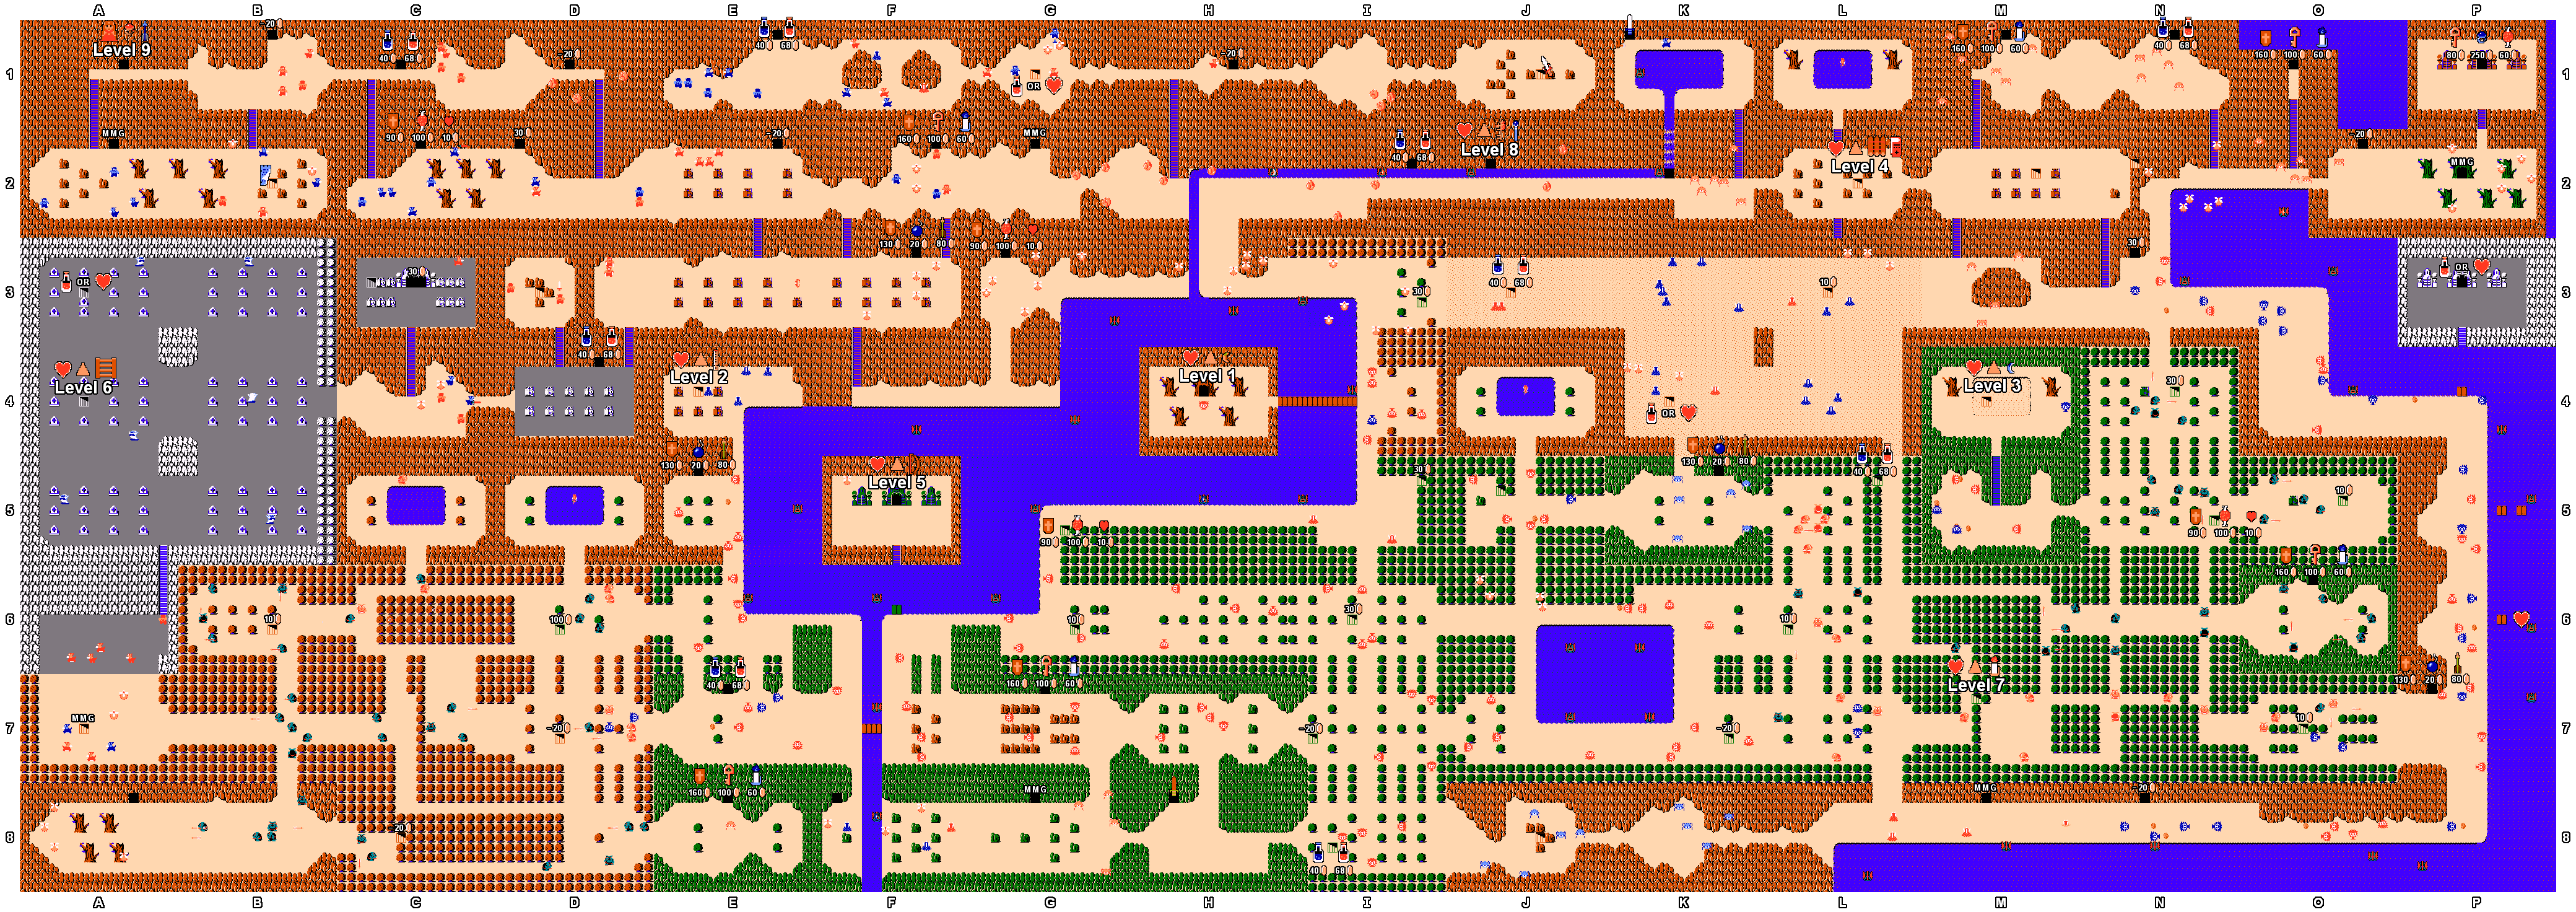 Mike's RPG Center - The Legend of Zelda on adventure of link map, dragon quest nes map, void a everquest map, metal gear nes map, mario nes map, ninja turtles nes map, metroid nes map, batman nes map, link nes map, star wars nes map, 360 the simpsons map, super metroid full map, hyrule total war world map, rygar nes map, castlevania nes map, chrono trigger nes map, dragon quest 6 map,